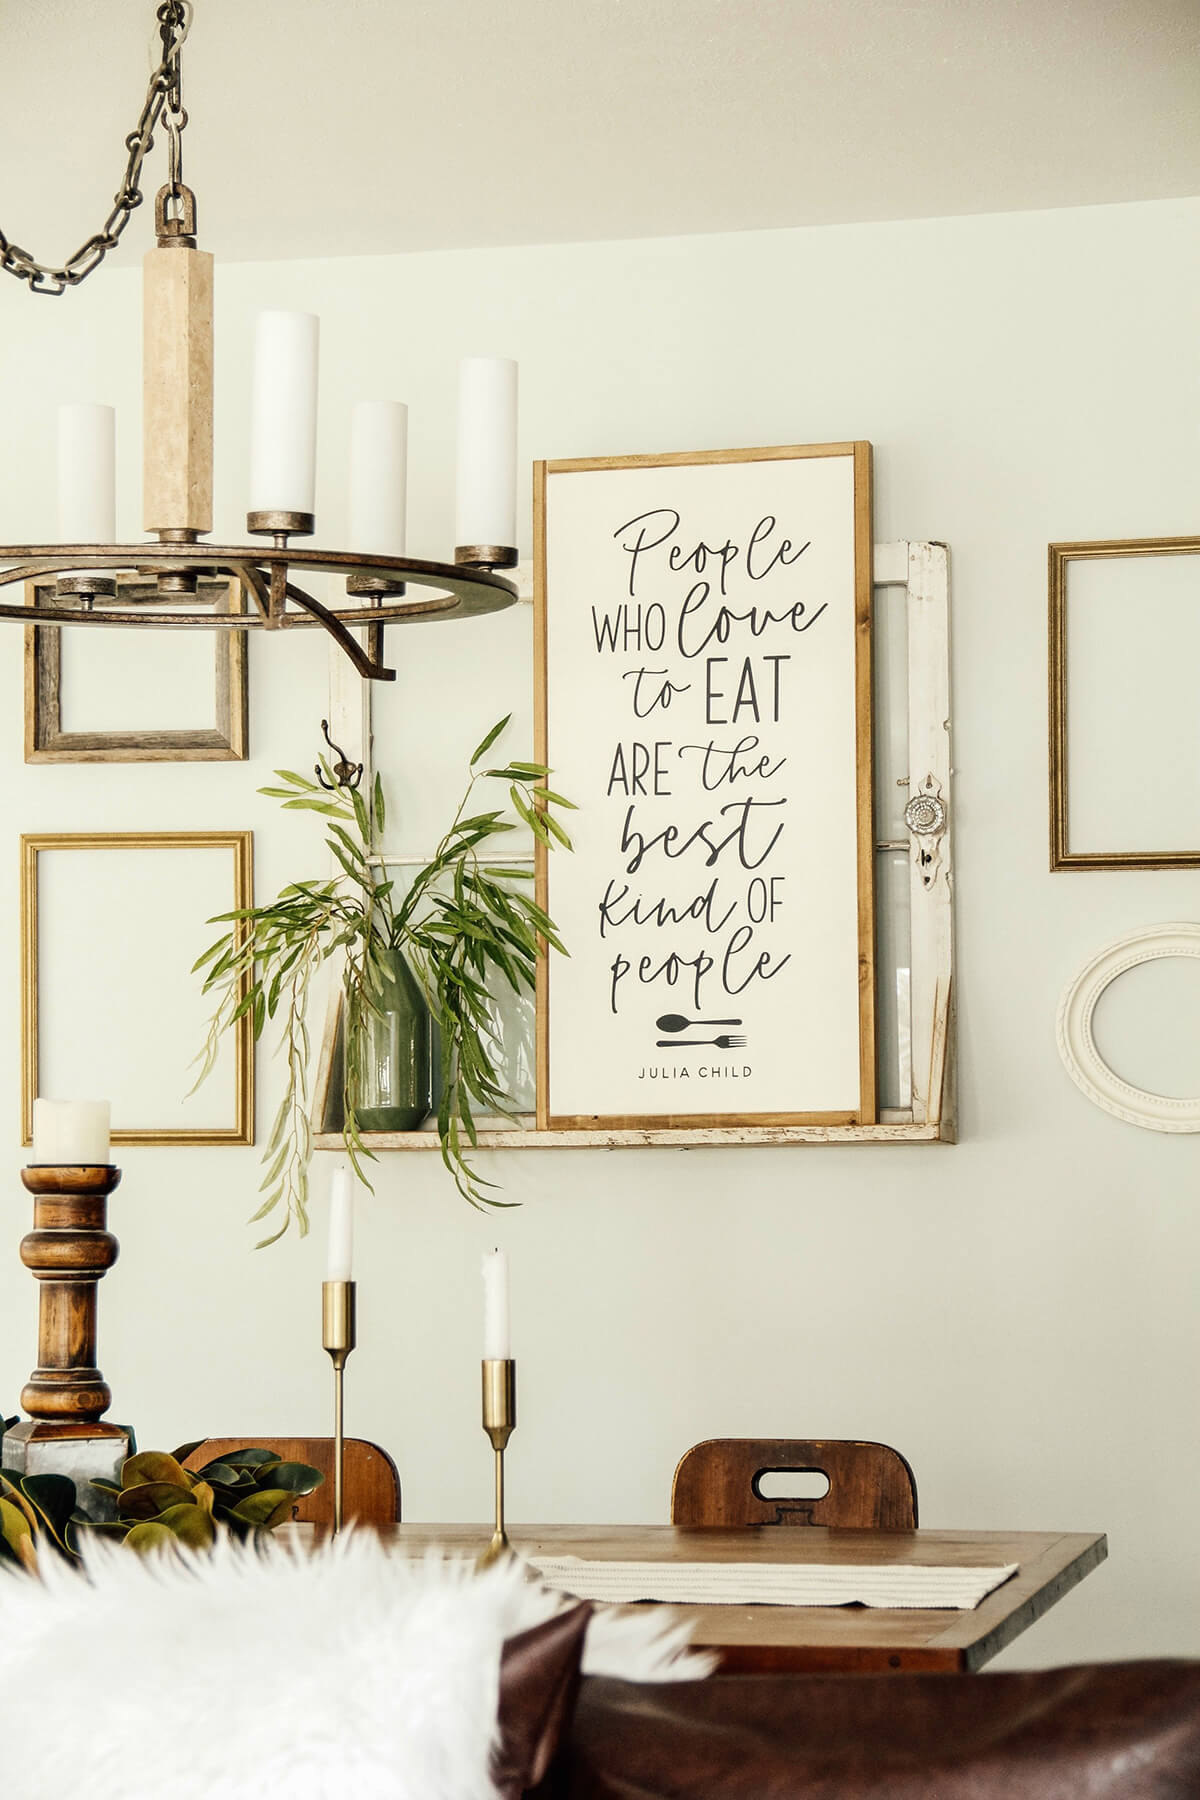 Julia Child Quote for the Kitchen